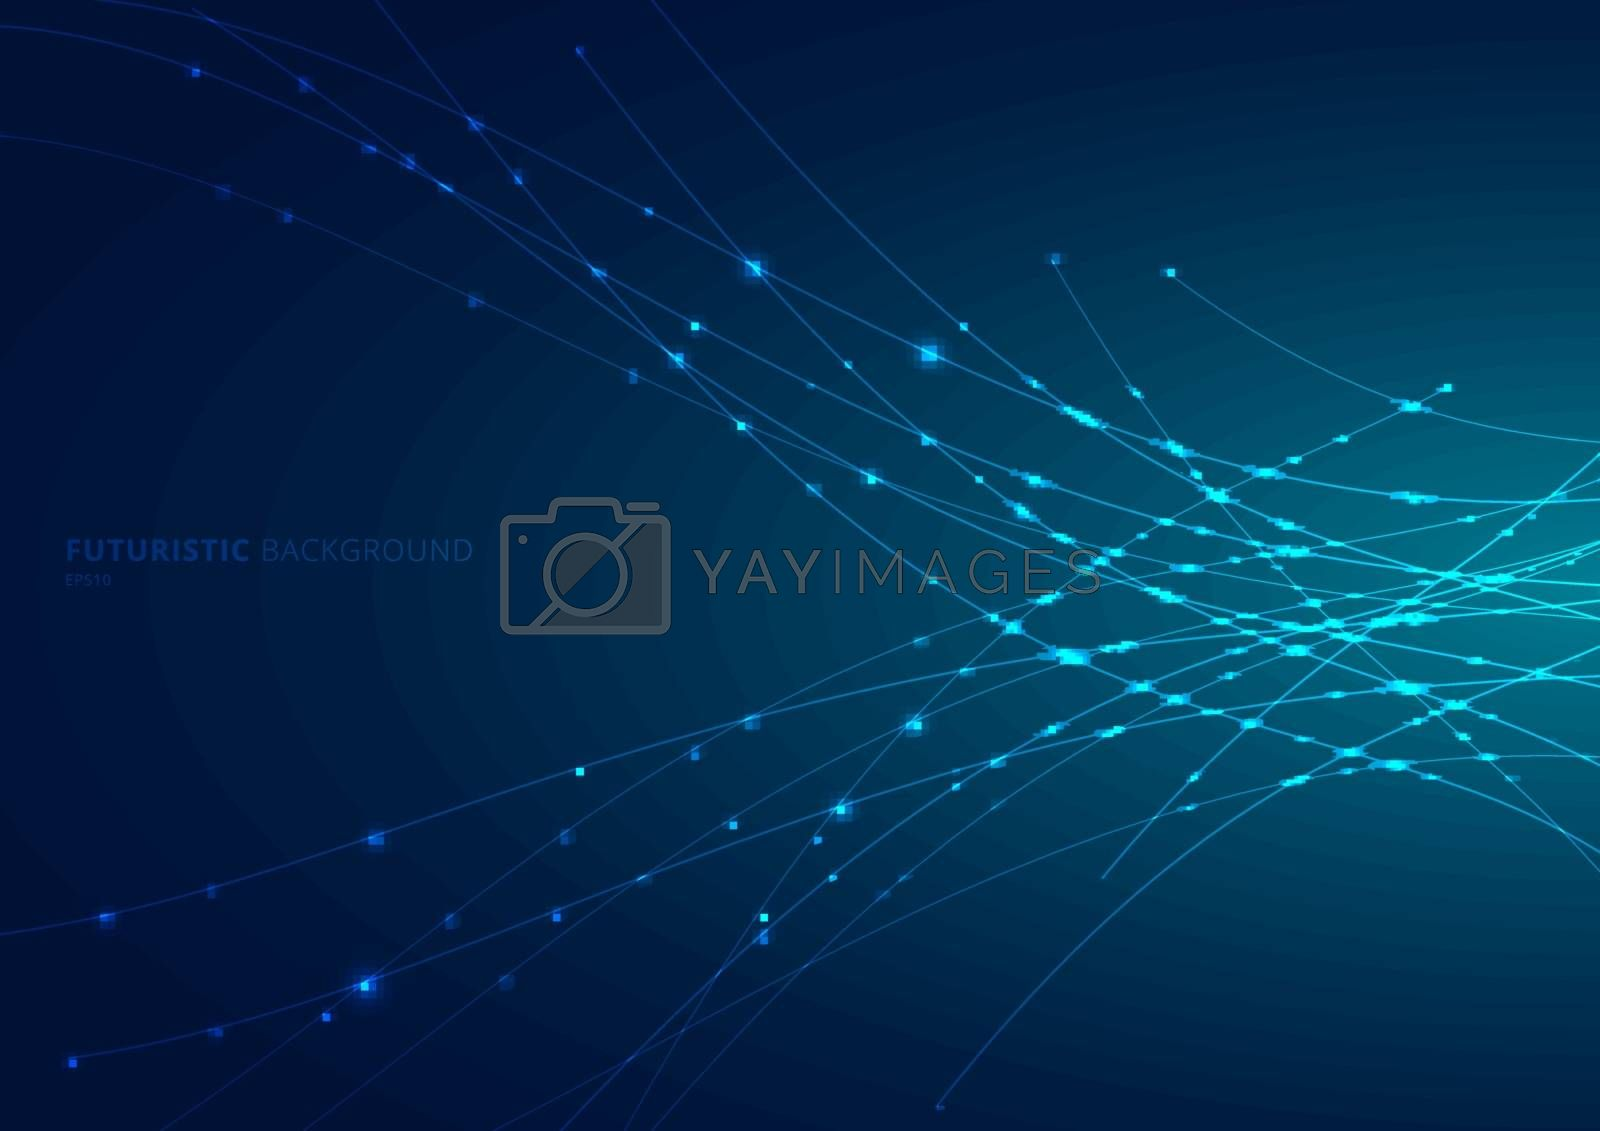 Abstract blue laser line curved with sparkle lighting on dark blue space background. Digital technology futuristic concept. Vector illustration